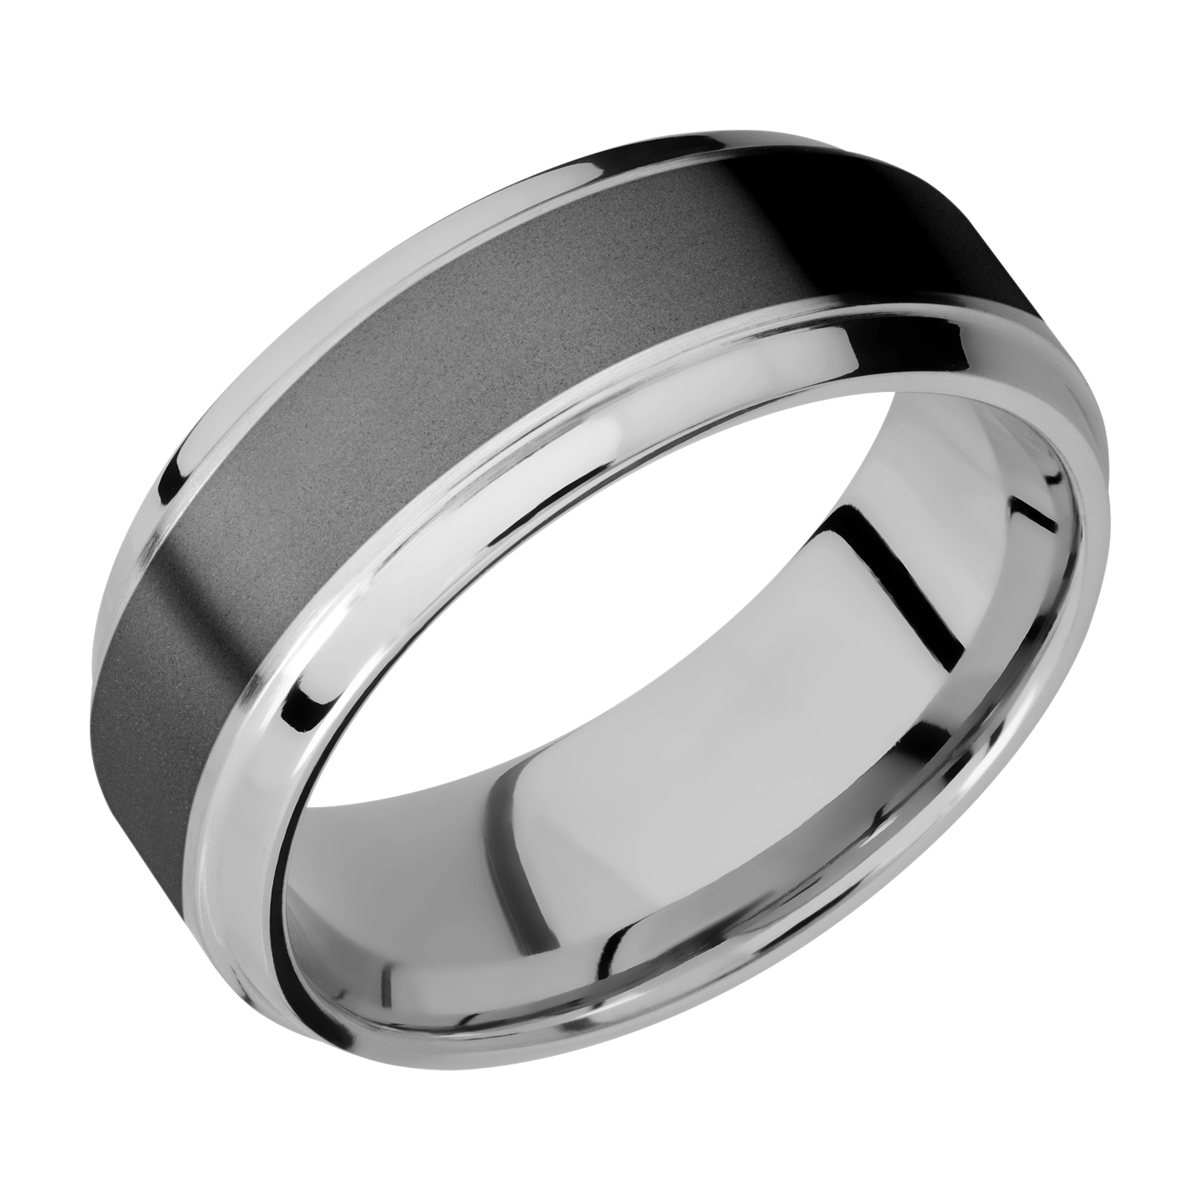 Lashbrook PF8B15(S)/ZIRCONIUM Titanium Wedding Ring or Band